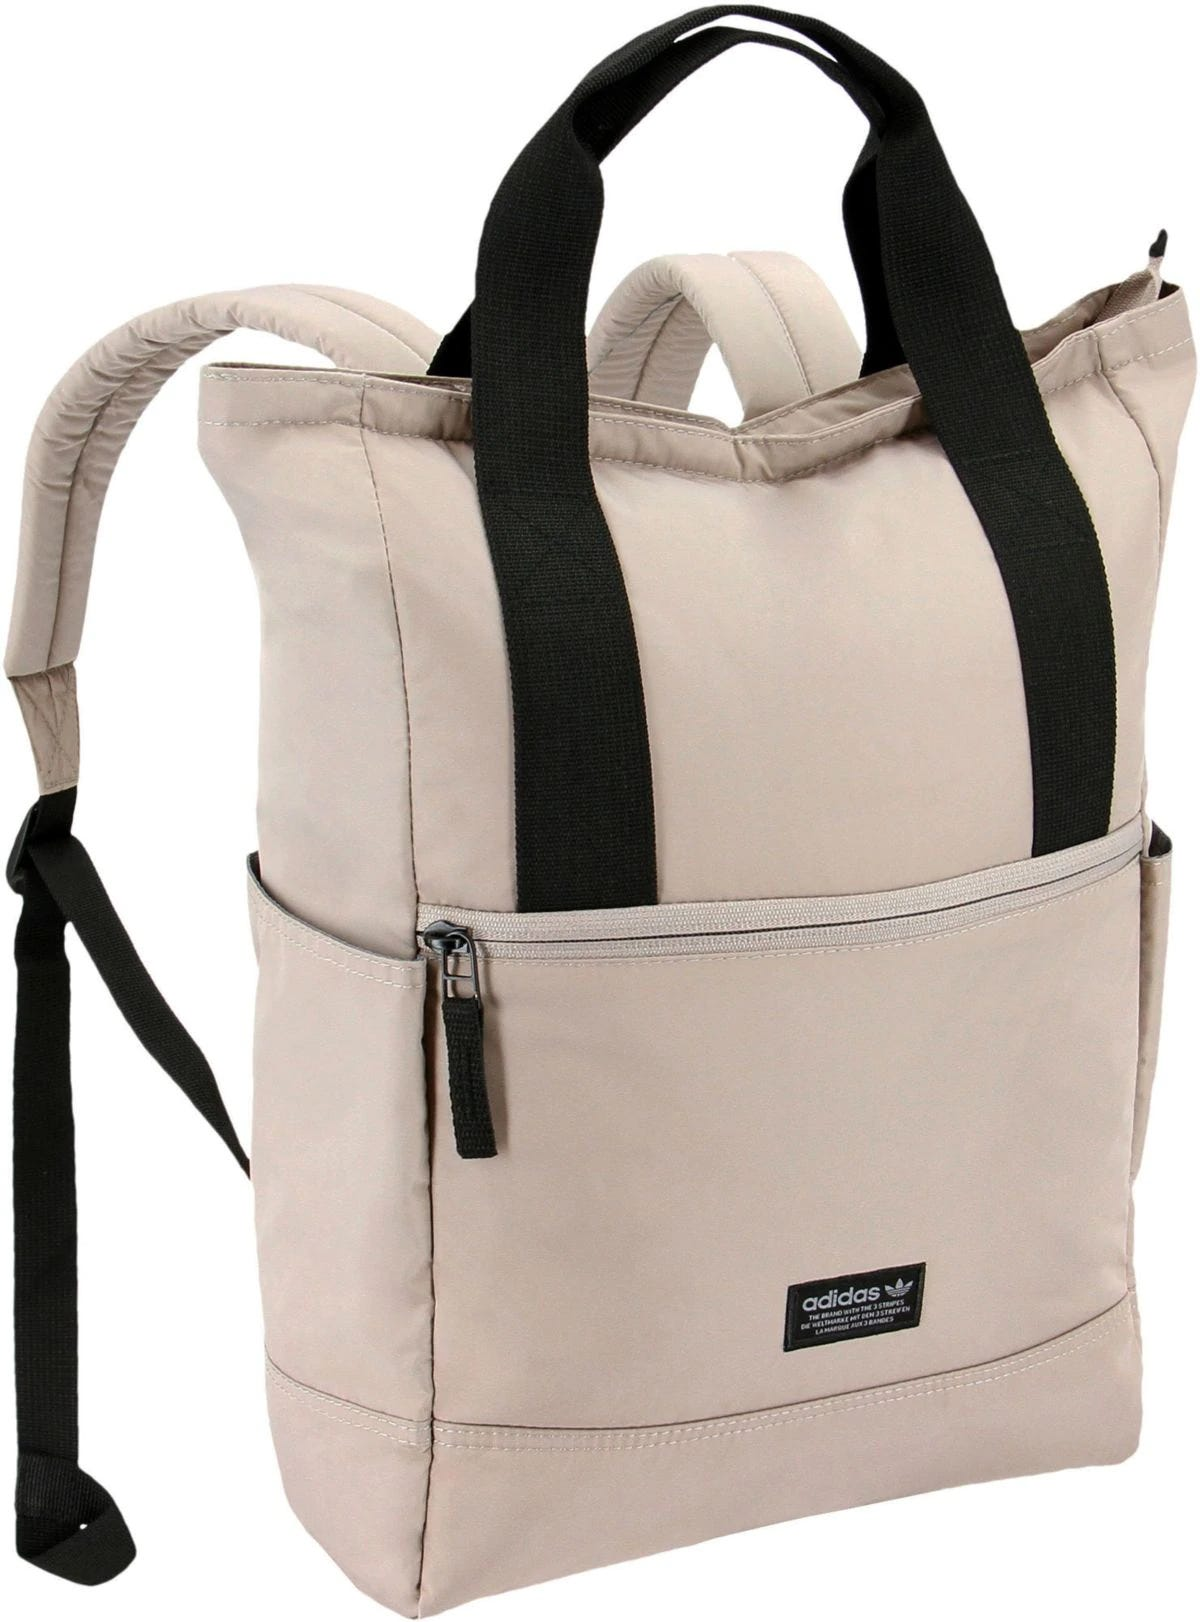 7dcf0cc43a3c2 Best Gym Bags For Women - Fitness Totes